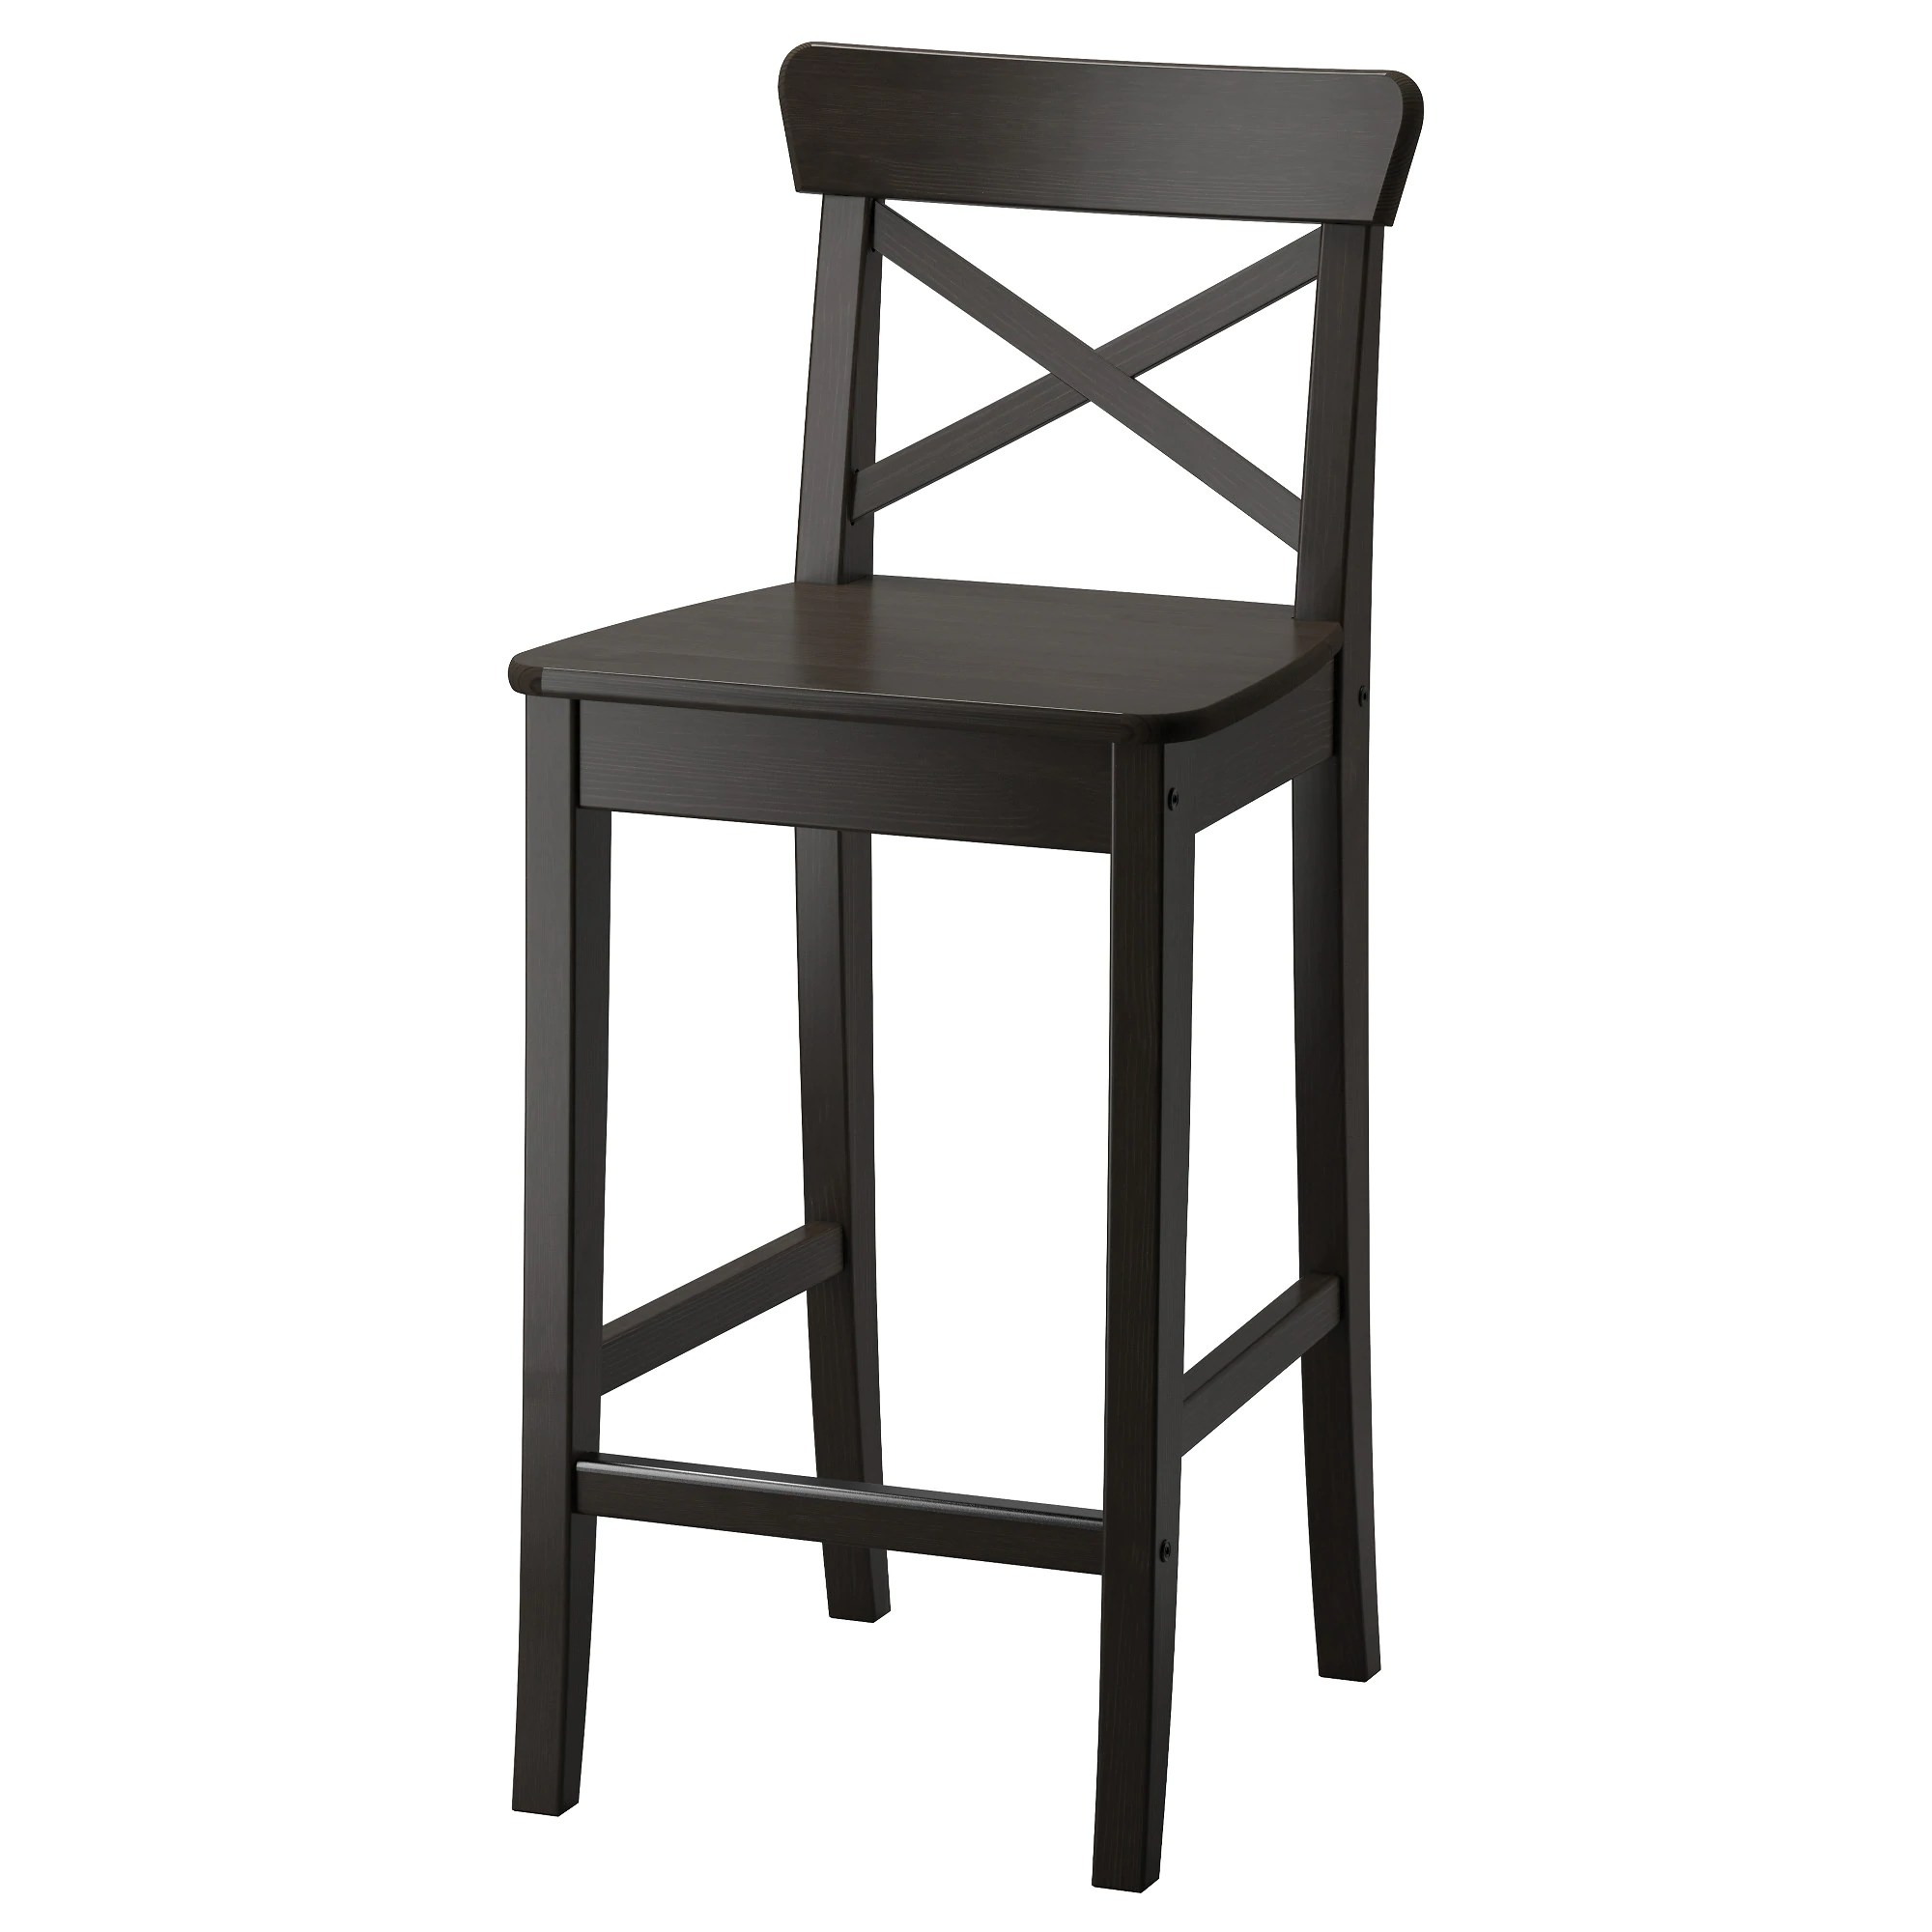 Bar Stool Chairs Ingolf Bar Stool With Backrest Brown Black